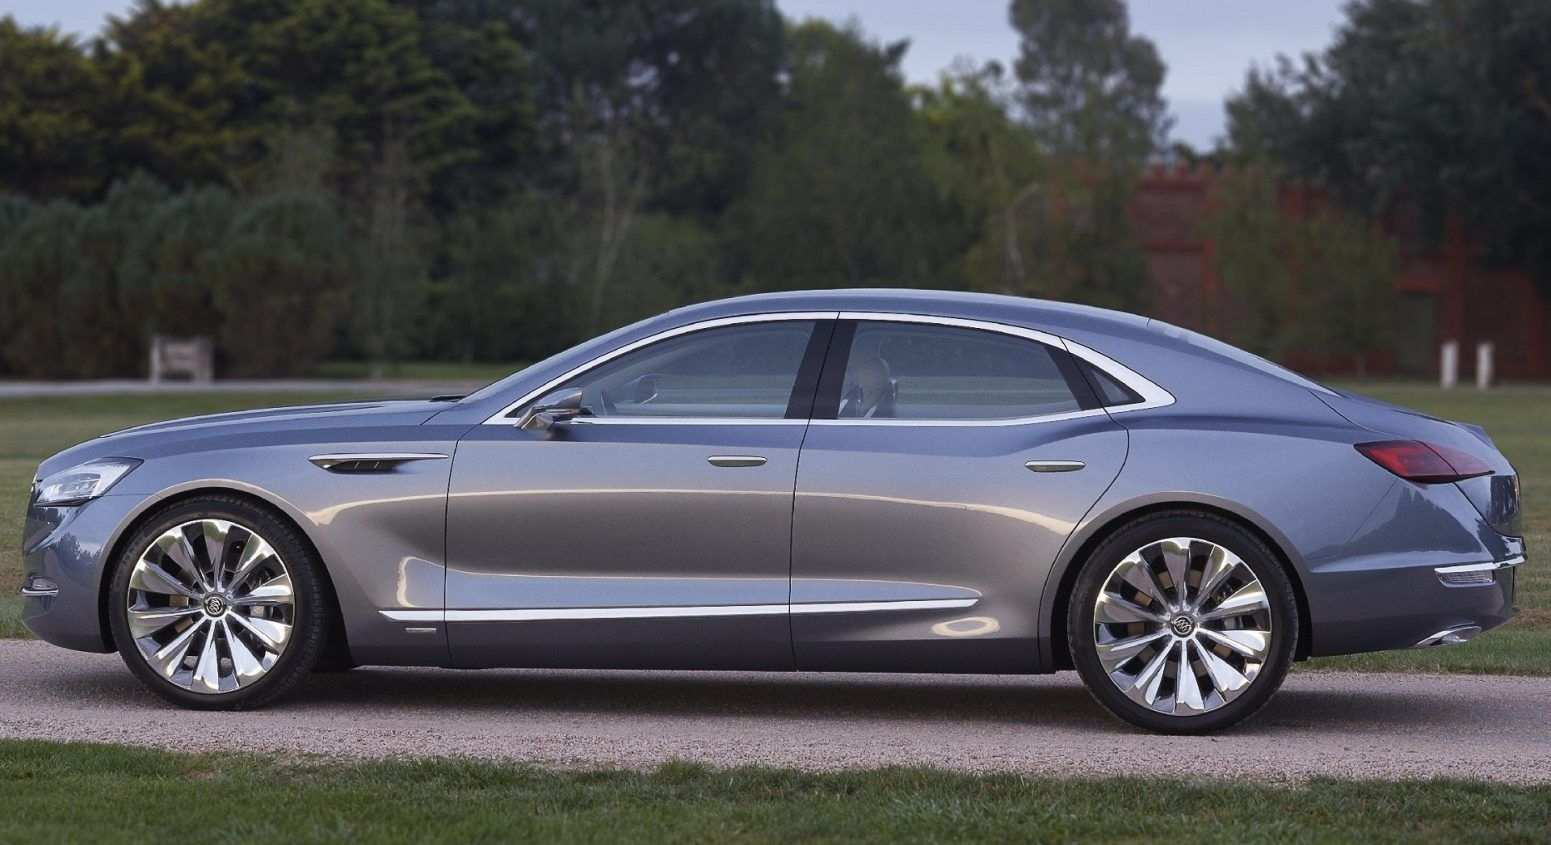 36 Concept of Buick Concept Cars 2019 Picture Release Date And Review Specs and Review for Buick Concept Cars 2019 Picture Release Date And Review